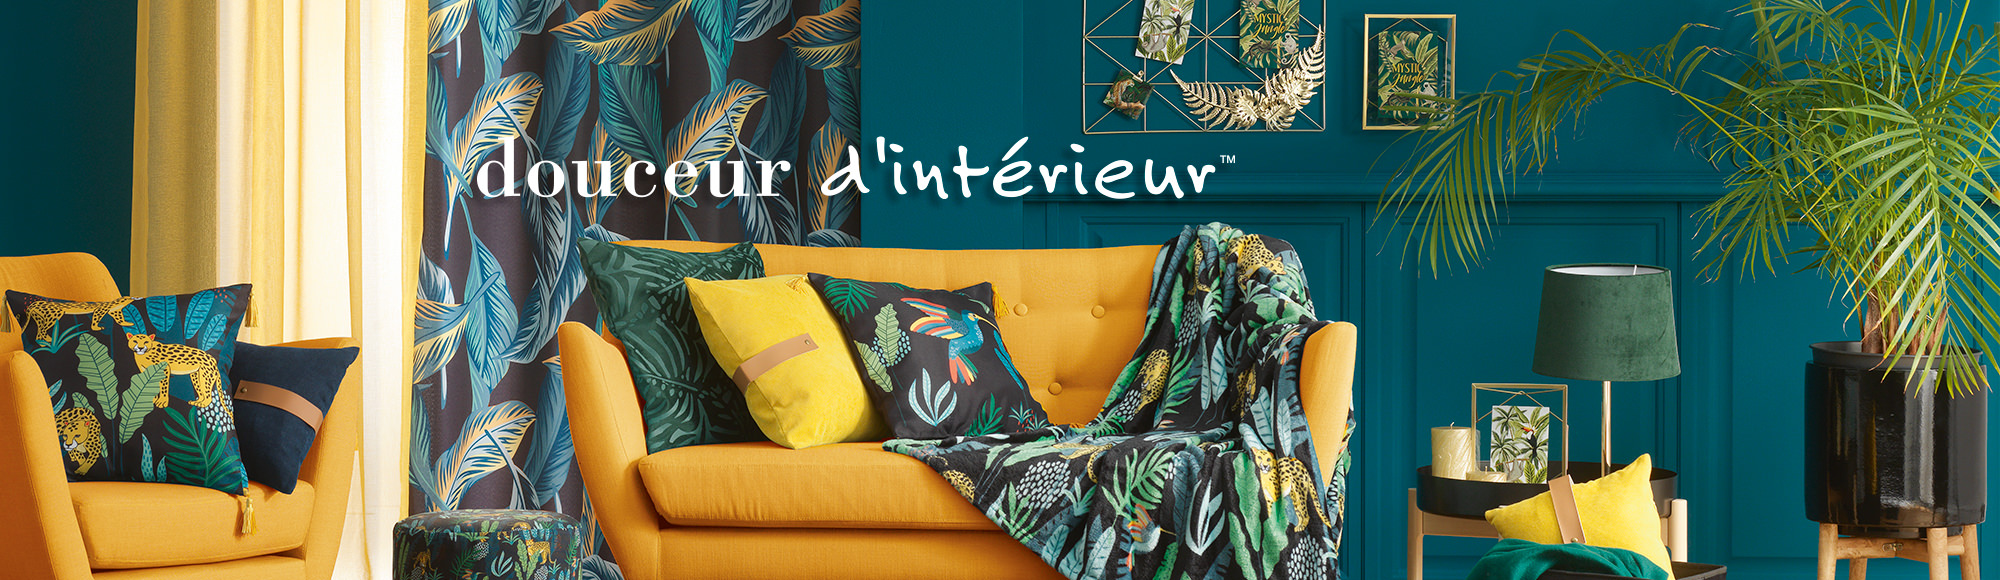 U10 – Douceur d'intérieur brand – Furnishing – Mystic Jungle theme – Curtains, net curtains, cushions, throws, interior decoration, vegetal ornaments, animal